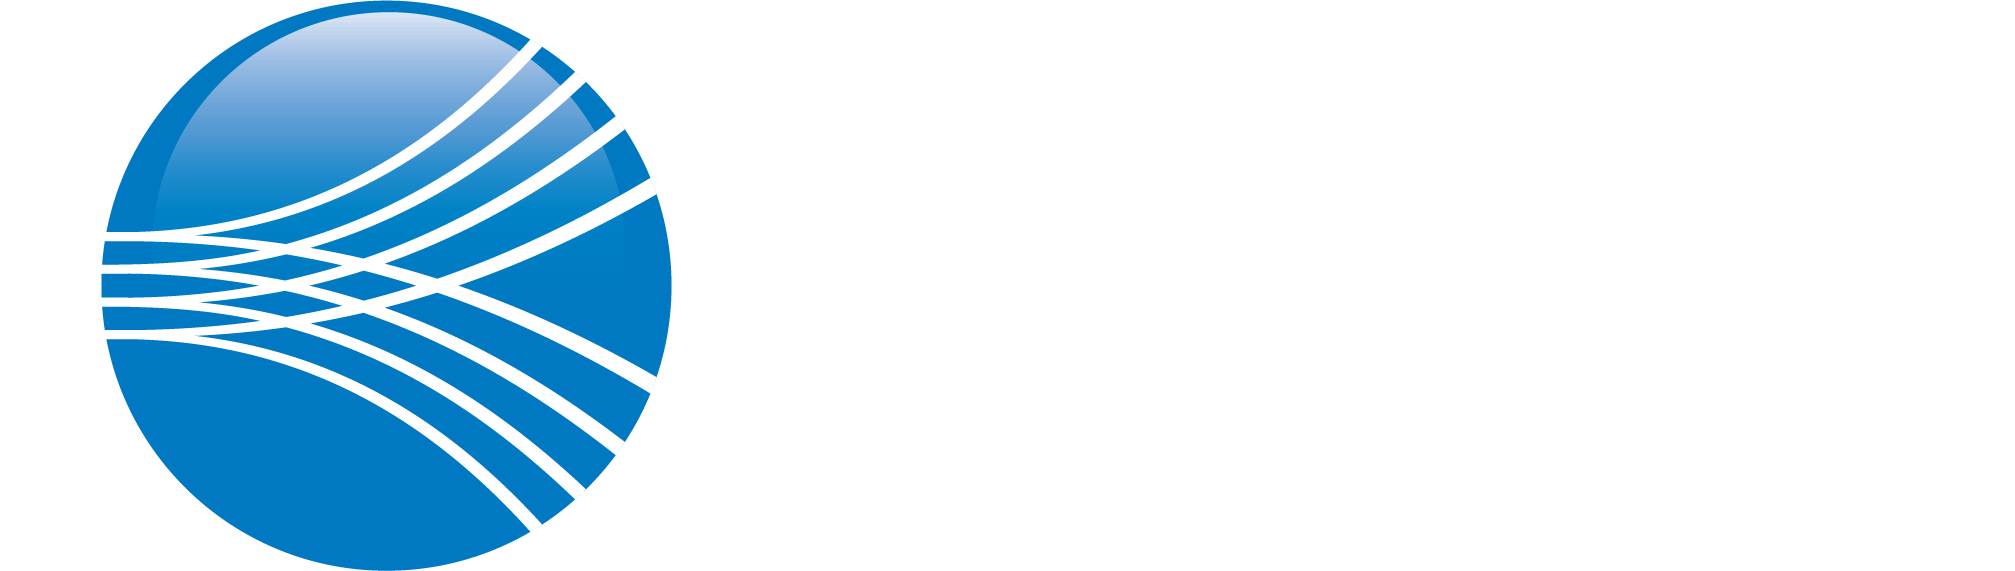 GGR Communications